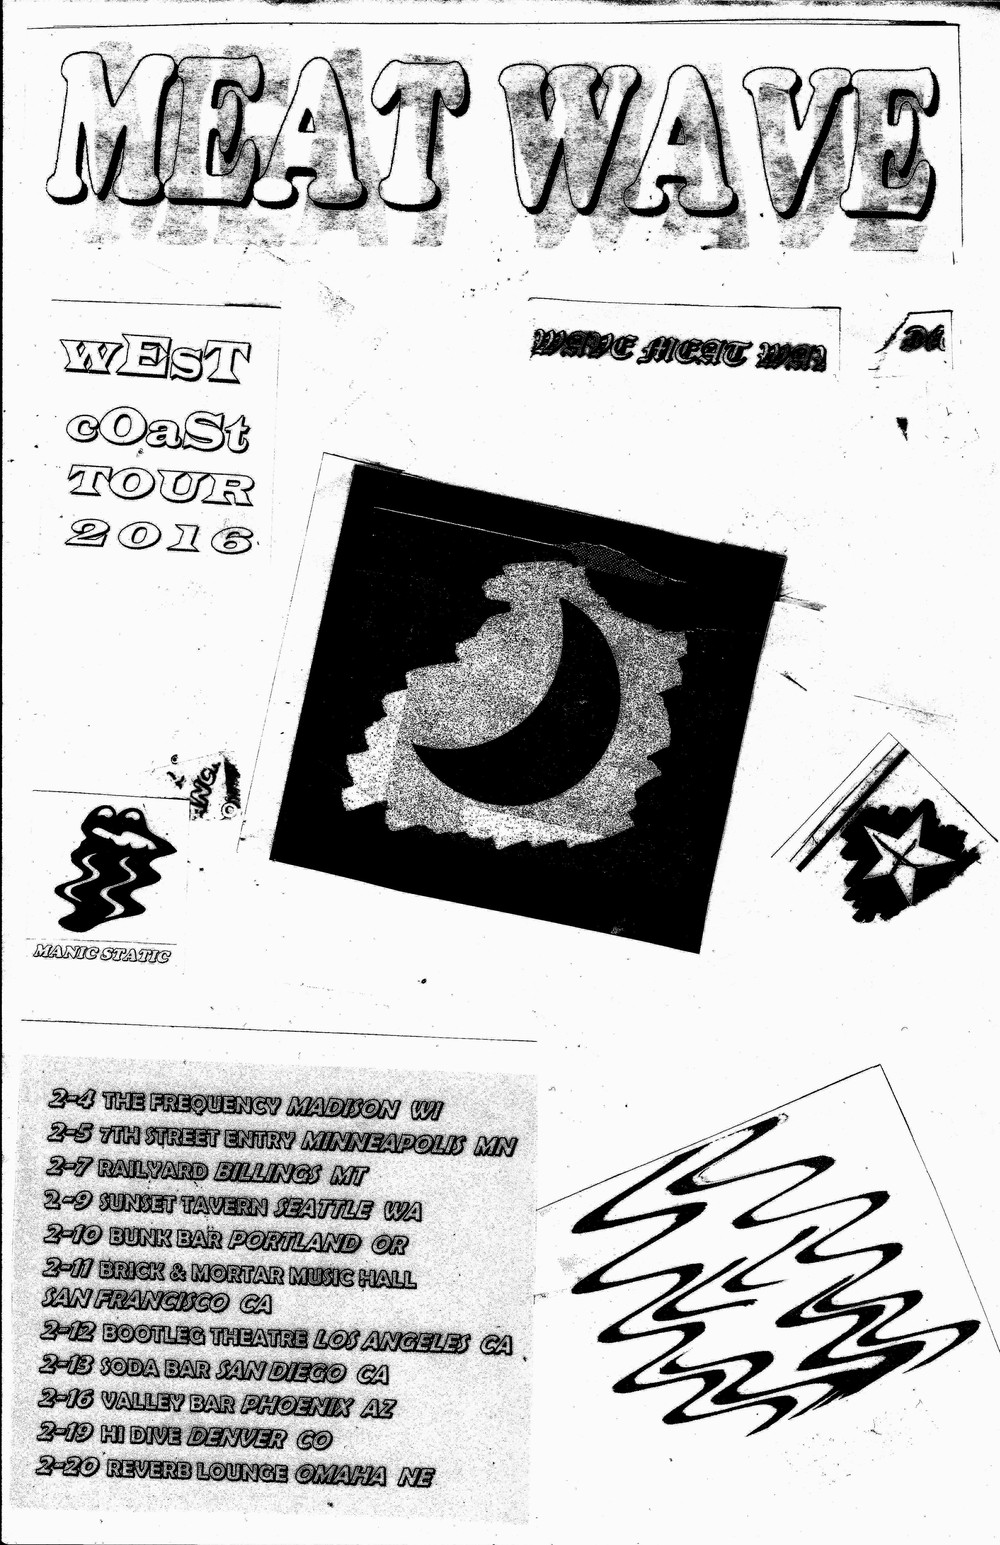 meat wave poster1.jpg